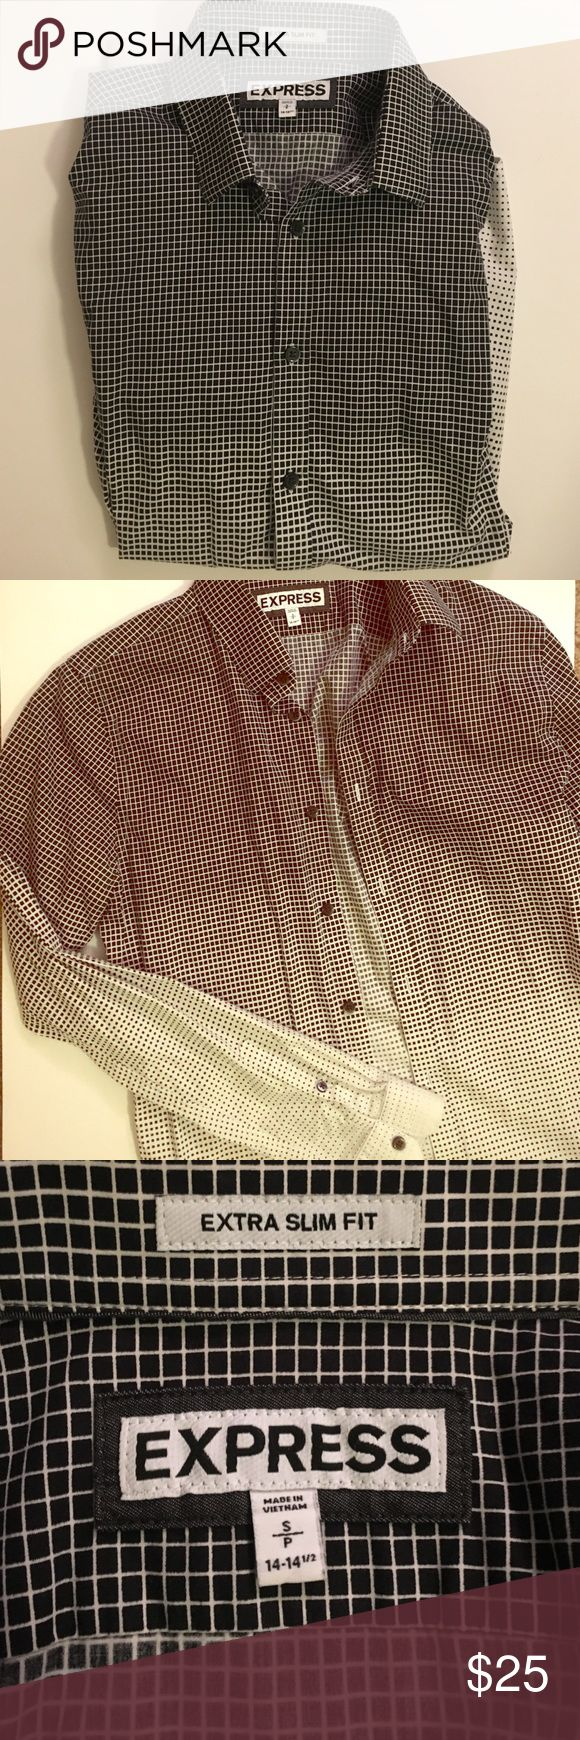 NWOT Express Men's Extra Slim Fit Button Down Brand new condition without tags! A staple top for the office or wear with jeans for a night out. Slimming fit, ombre style colors. open to offers ♥️ Express Shirts Dress Shirts